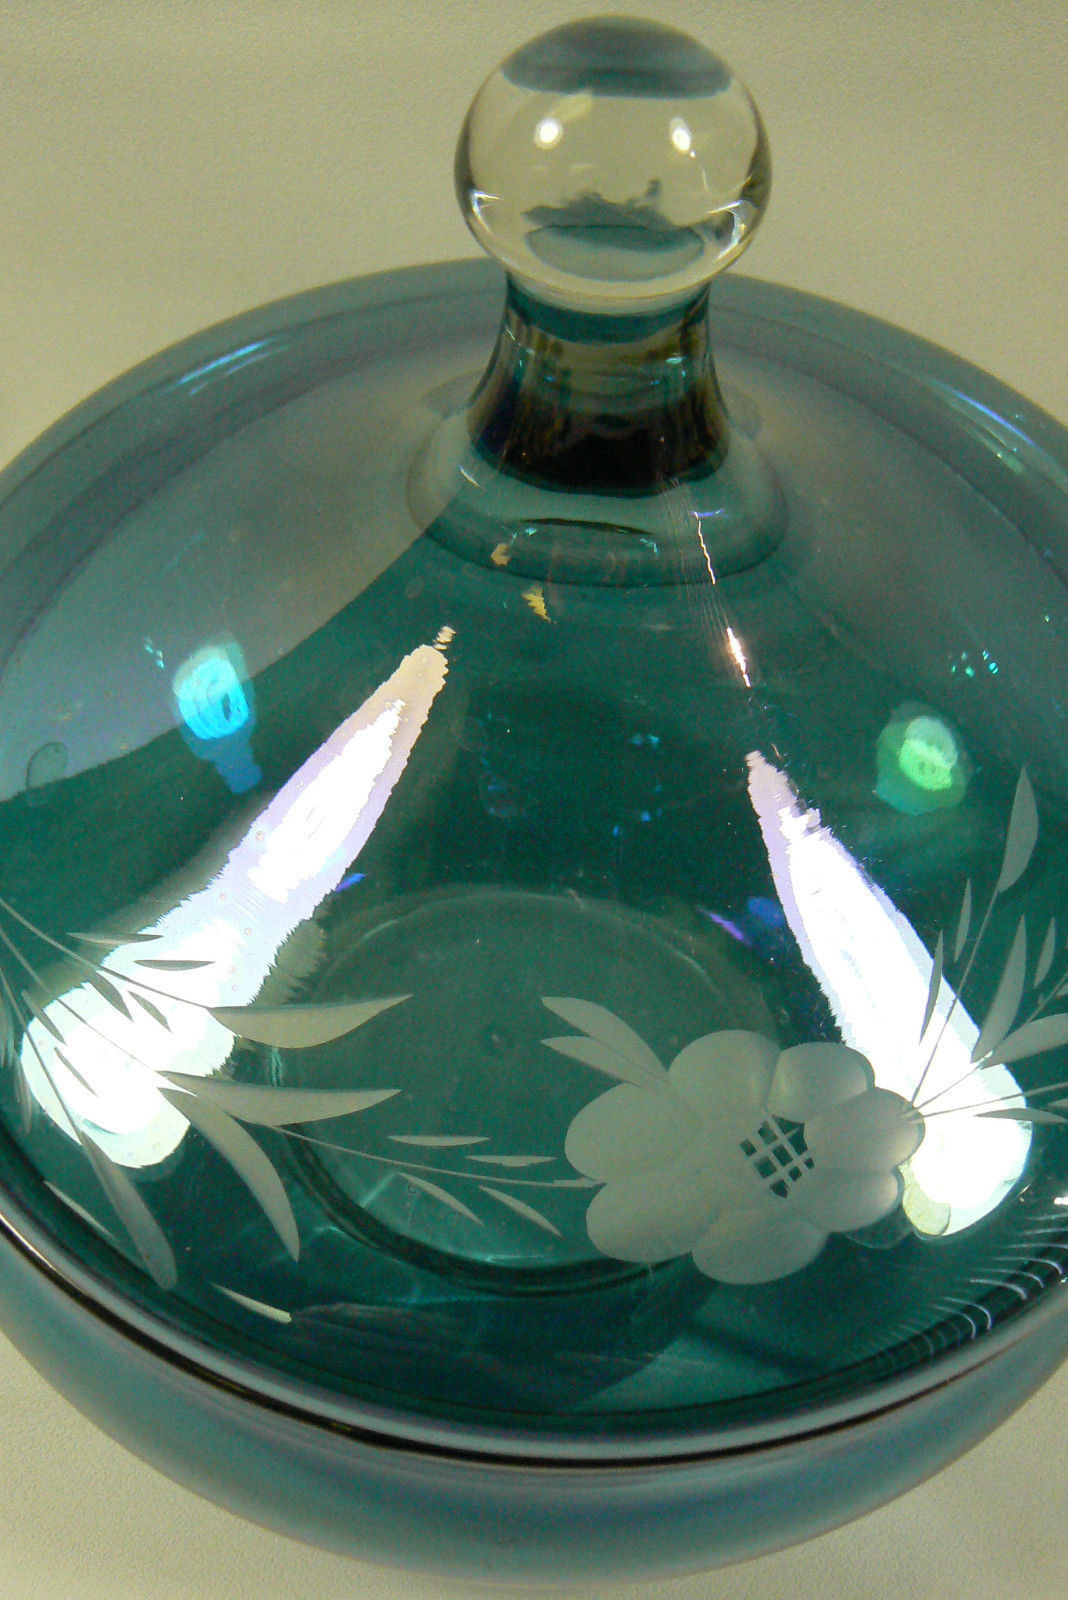 Iridescent Blue Ethched Floral Design Glass Compote Glass Candy Dish Lidded MINT